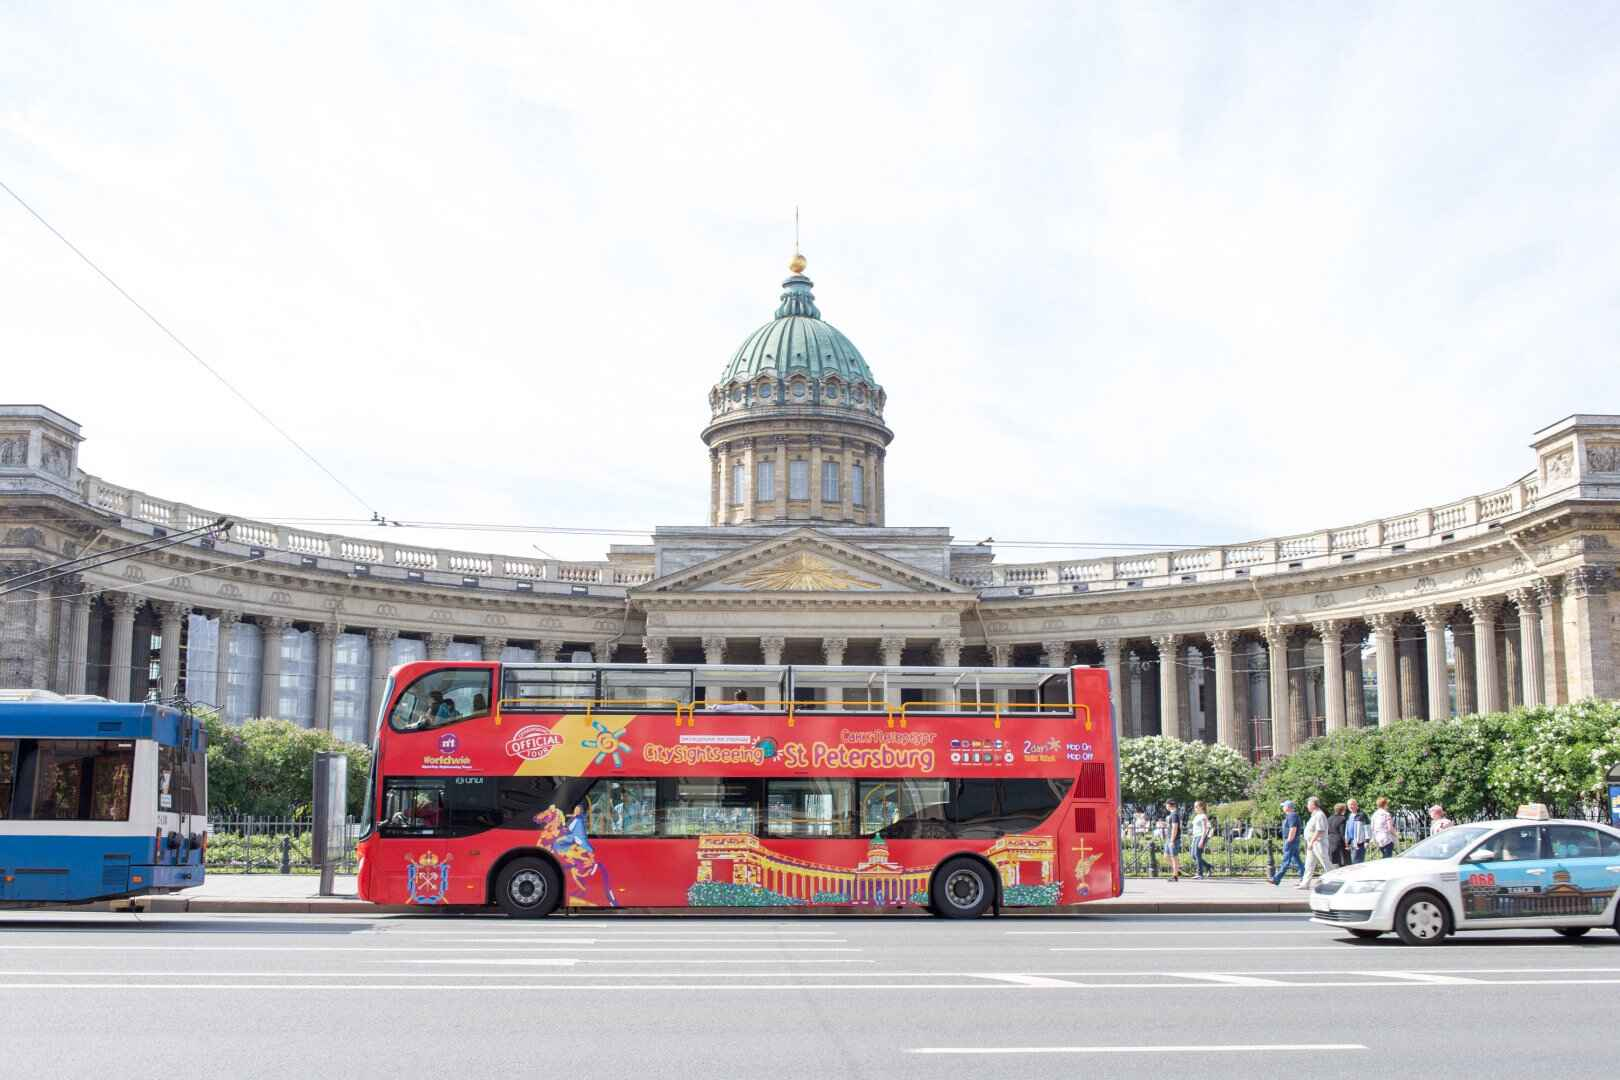 : Sightseeing tour across St. Petersburg by bus | Buses City Sightseeing | Card St. Petersburg City Pass, Фото 1